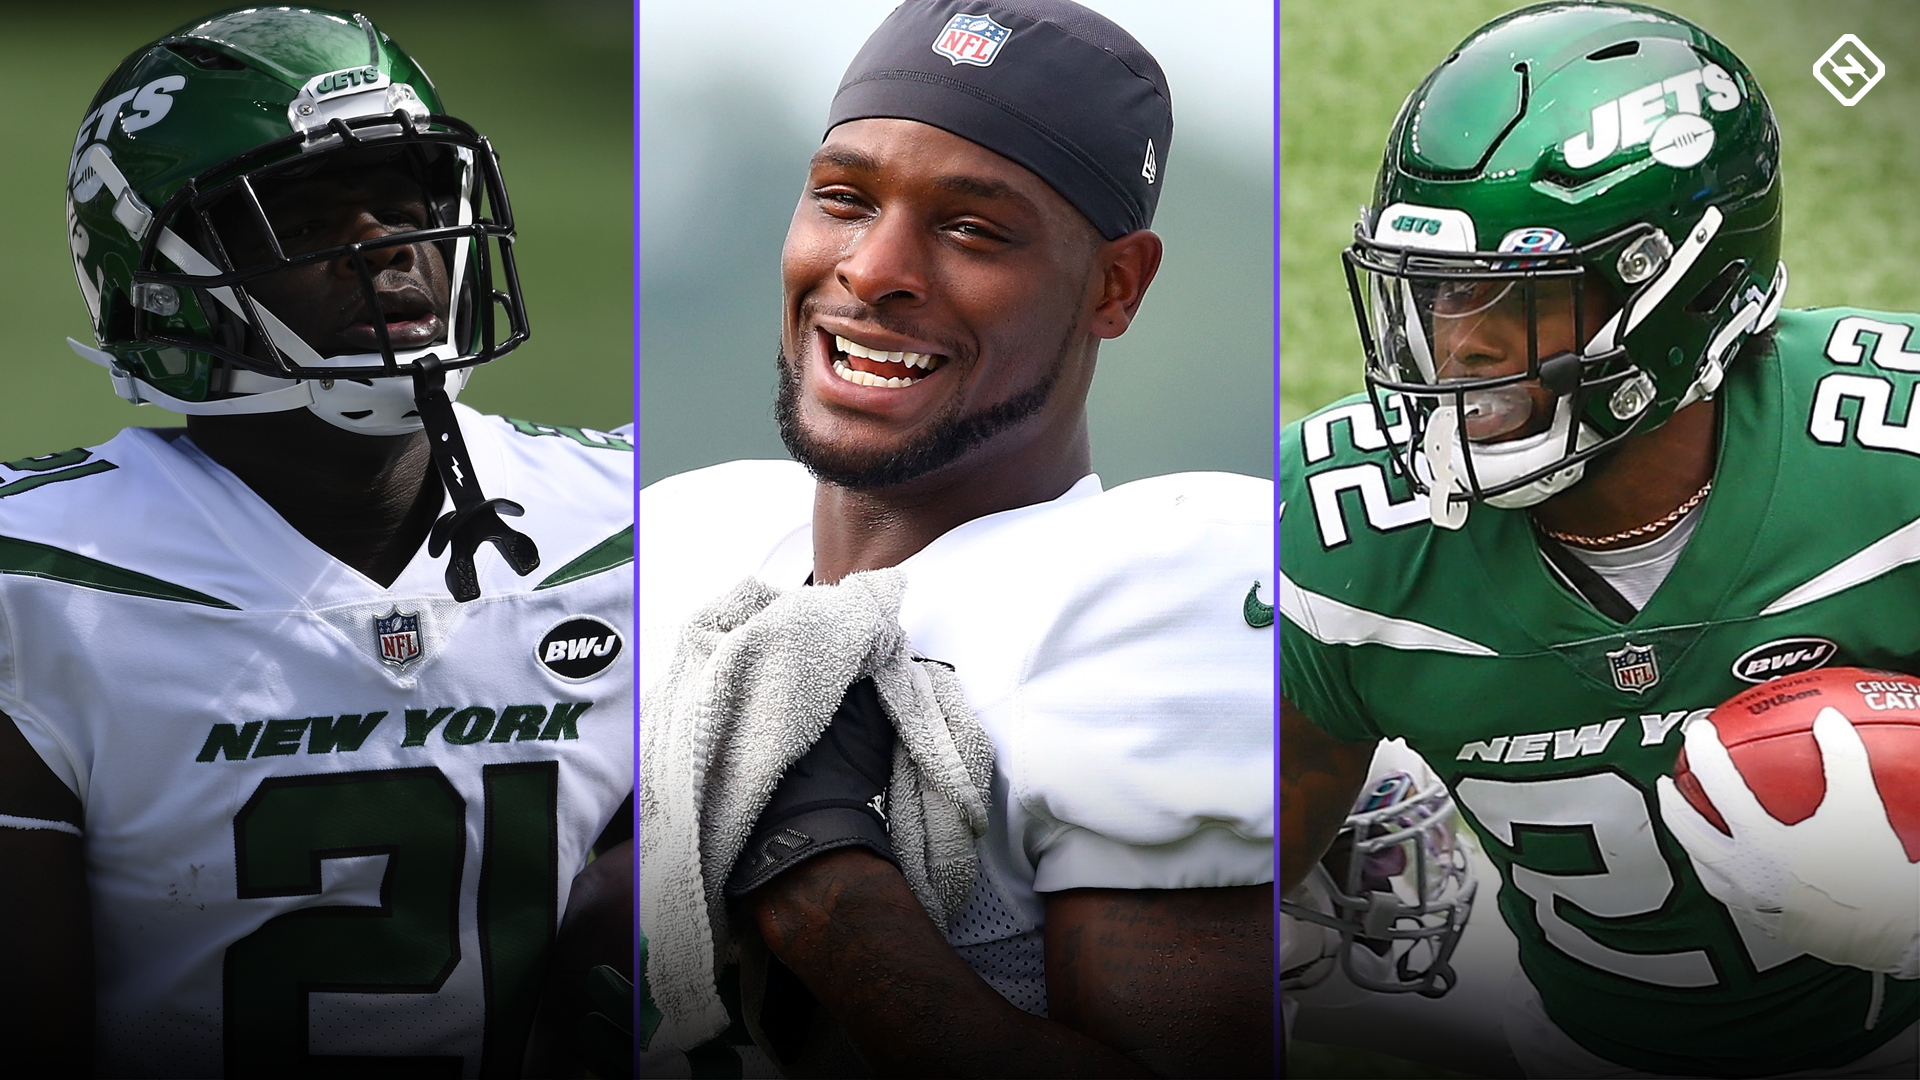 Who's the Jets starting RB? Fantasy outlooks for Frank Gore, La'Mical Perine after Le'Veon Bell's release